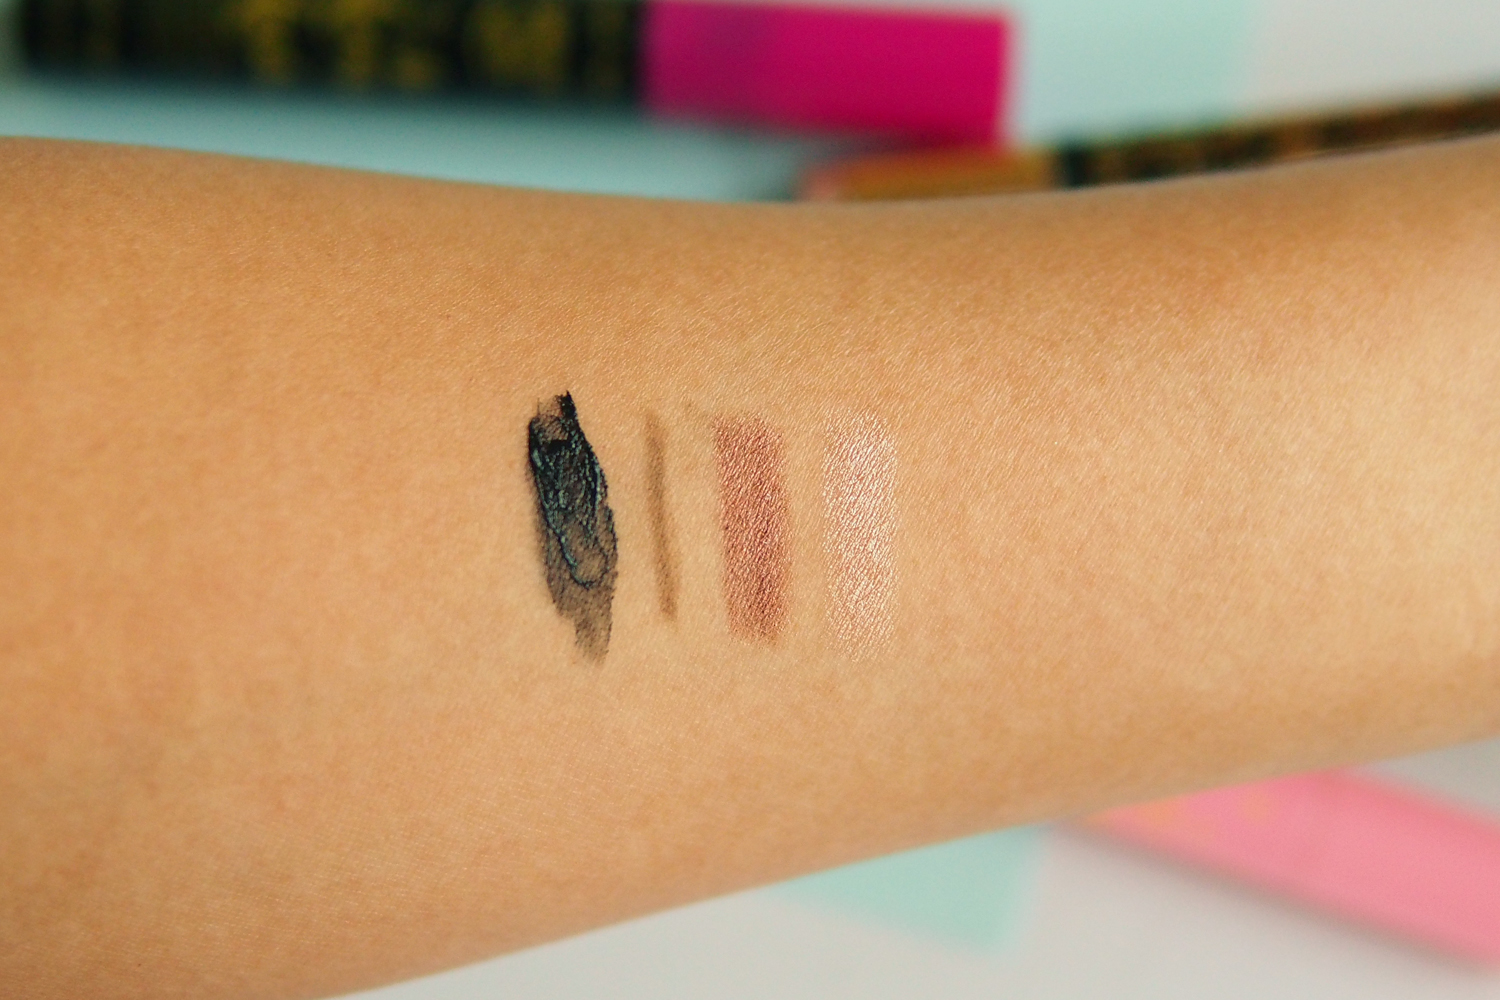 Swatches, from left:At Long Lash Supercurl Waterproof Mascara, Eye Love View Too Microtip Eyebrow Pencil & Spoolie Duo, Say Eye Do Easy Eyeshadow Cushion Duo in Espresso and in Champagne